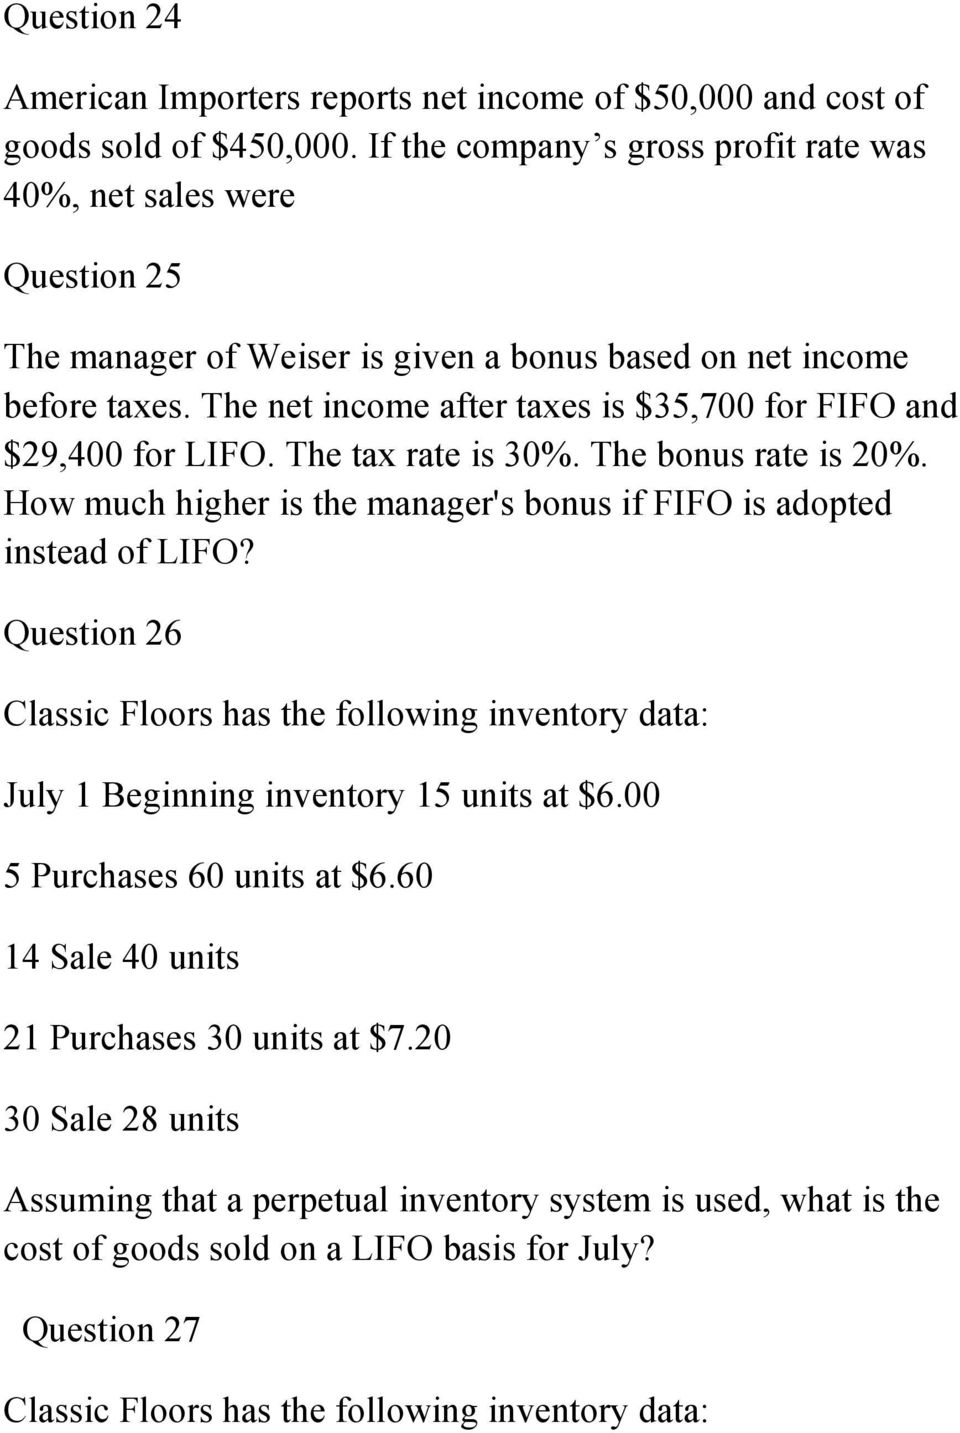 The net income after taxes is $35,700 for FIFO and $29,400 for LIFO. The tax rate is 30%. The bonus rate is 20%. How much higher is the manager's bonus if FIFO is adopted instead of LIFO?